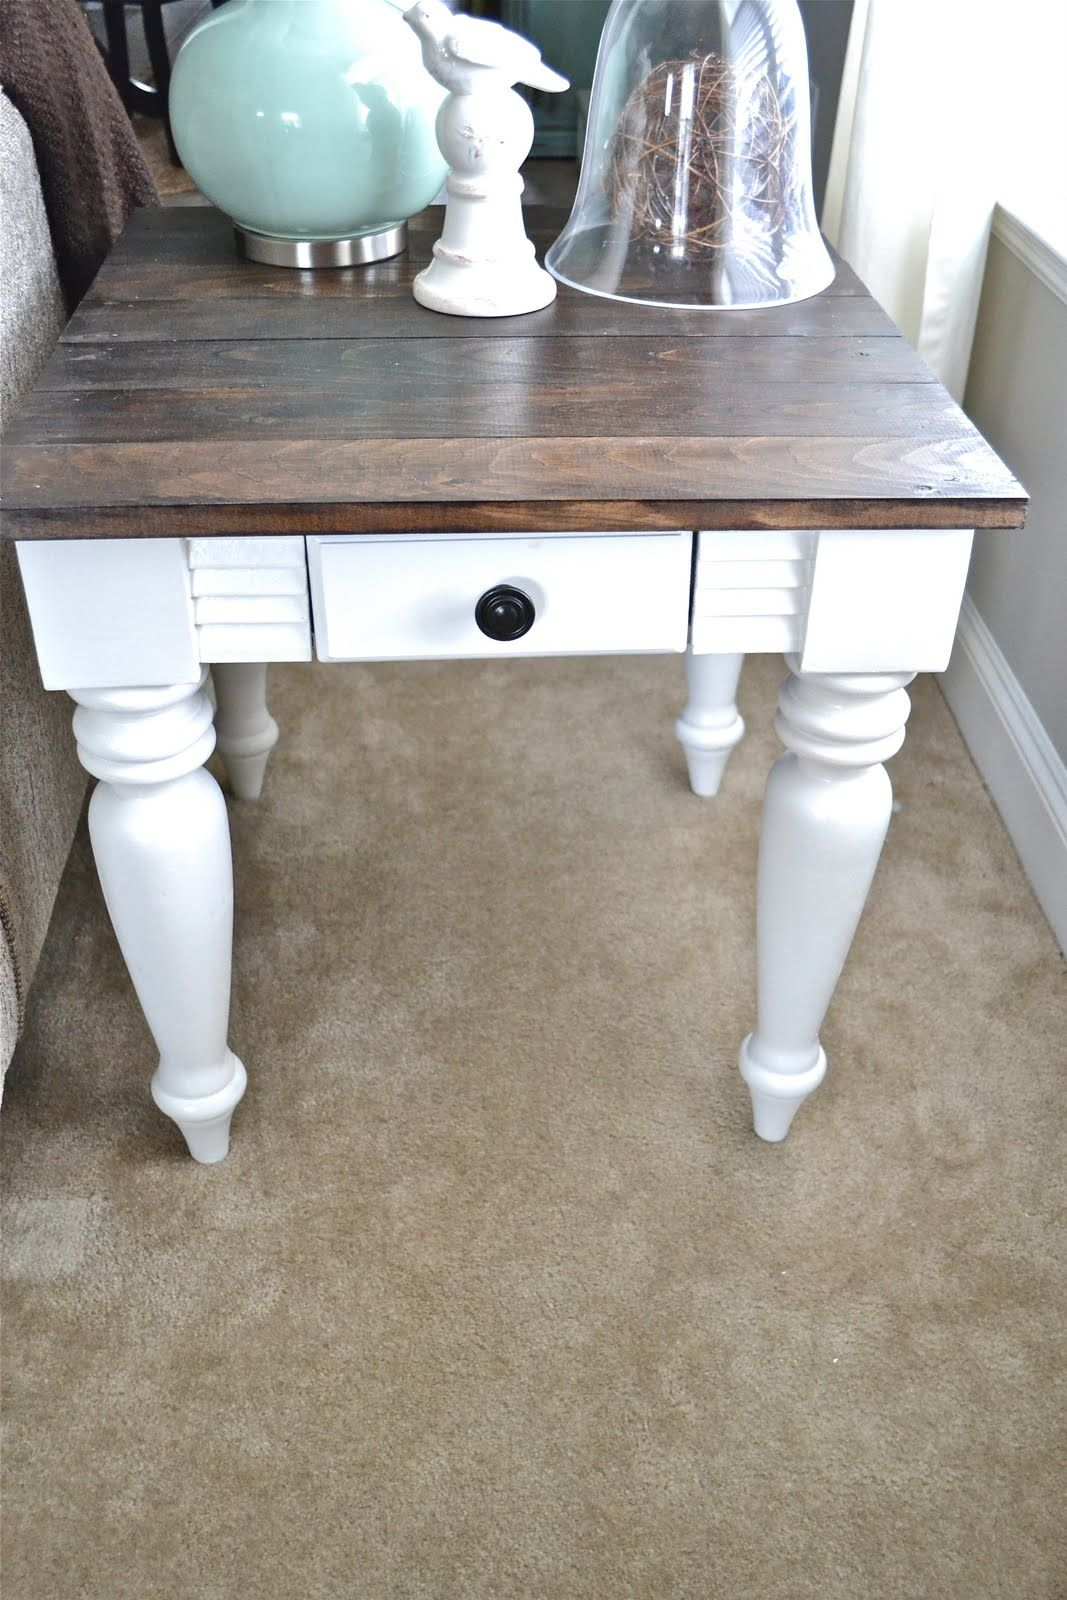 Diy End Table I Like The Dark Stain On The Table Top With The